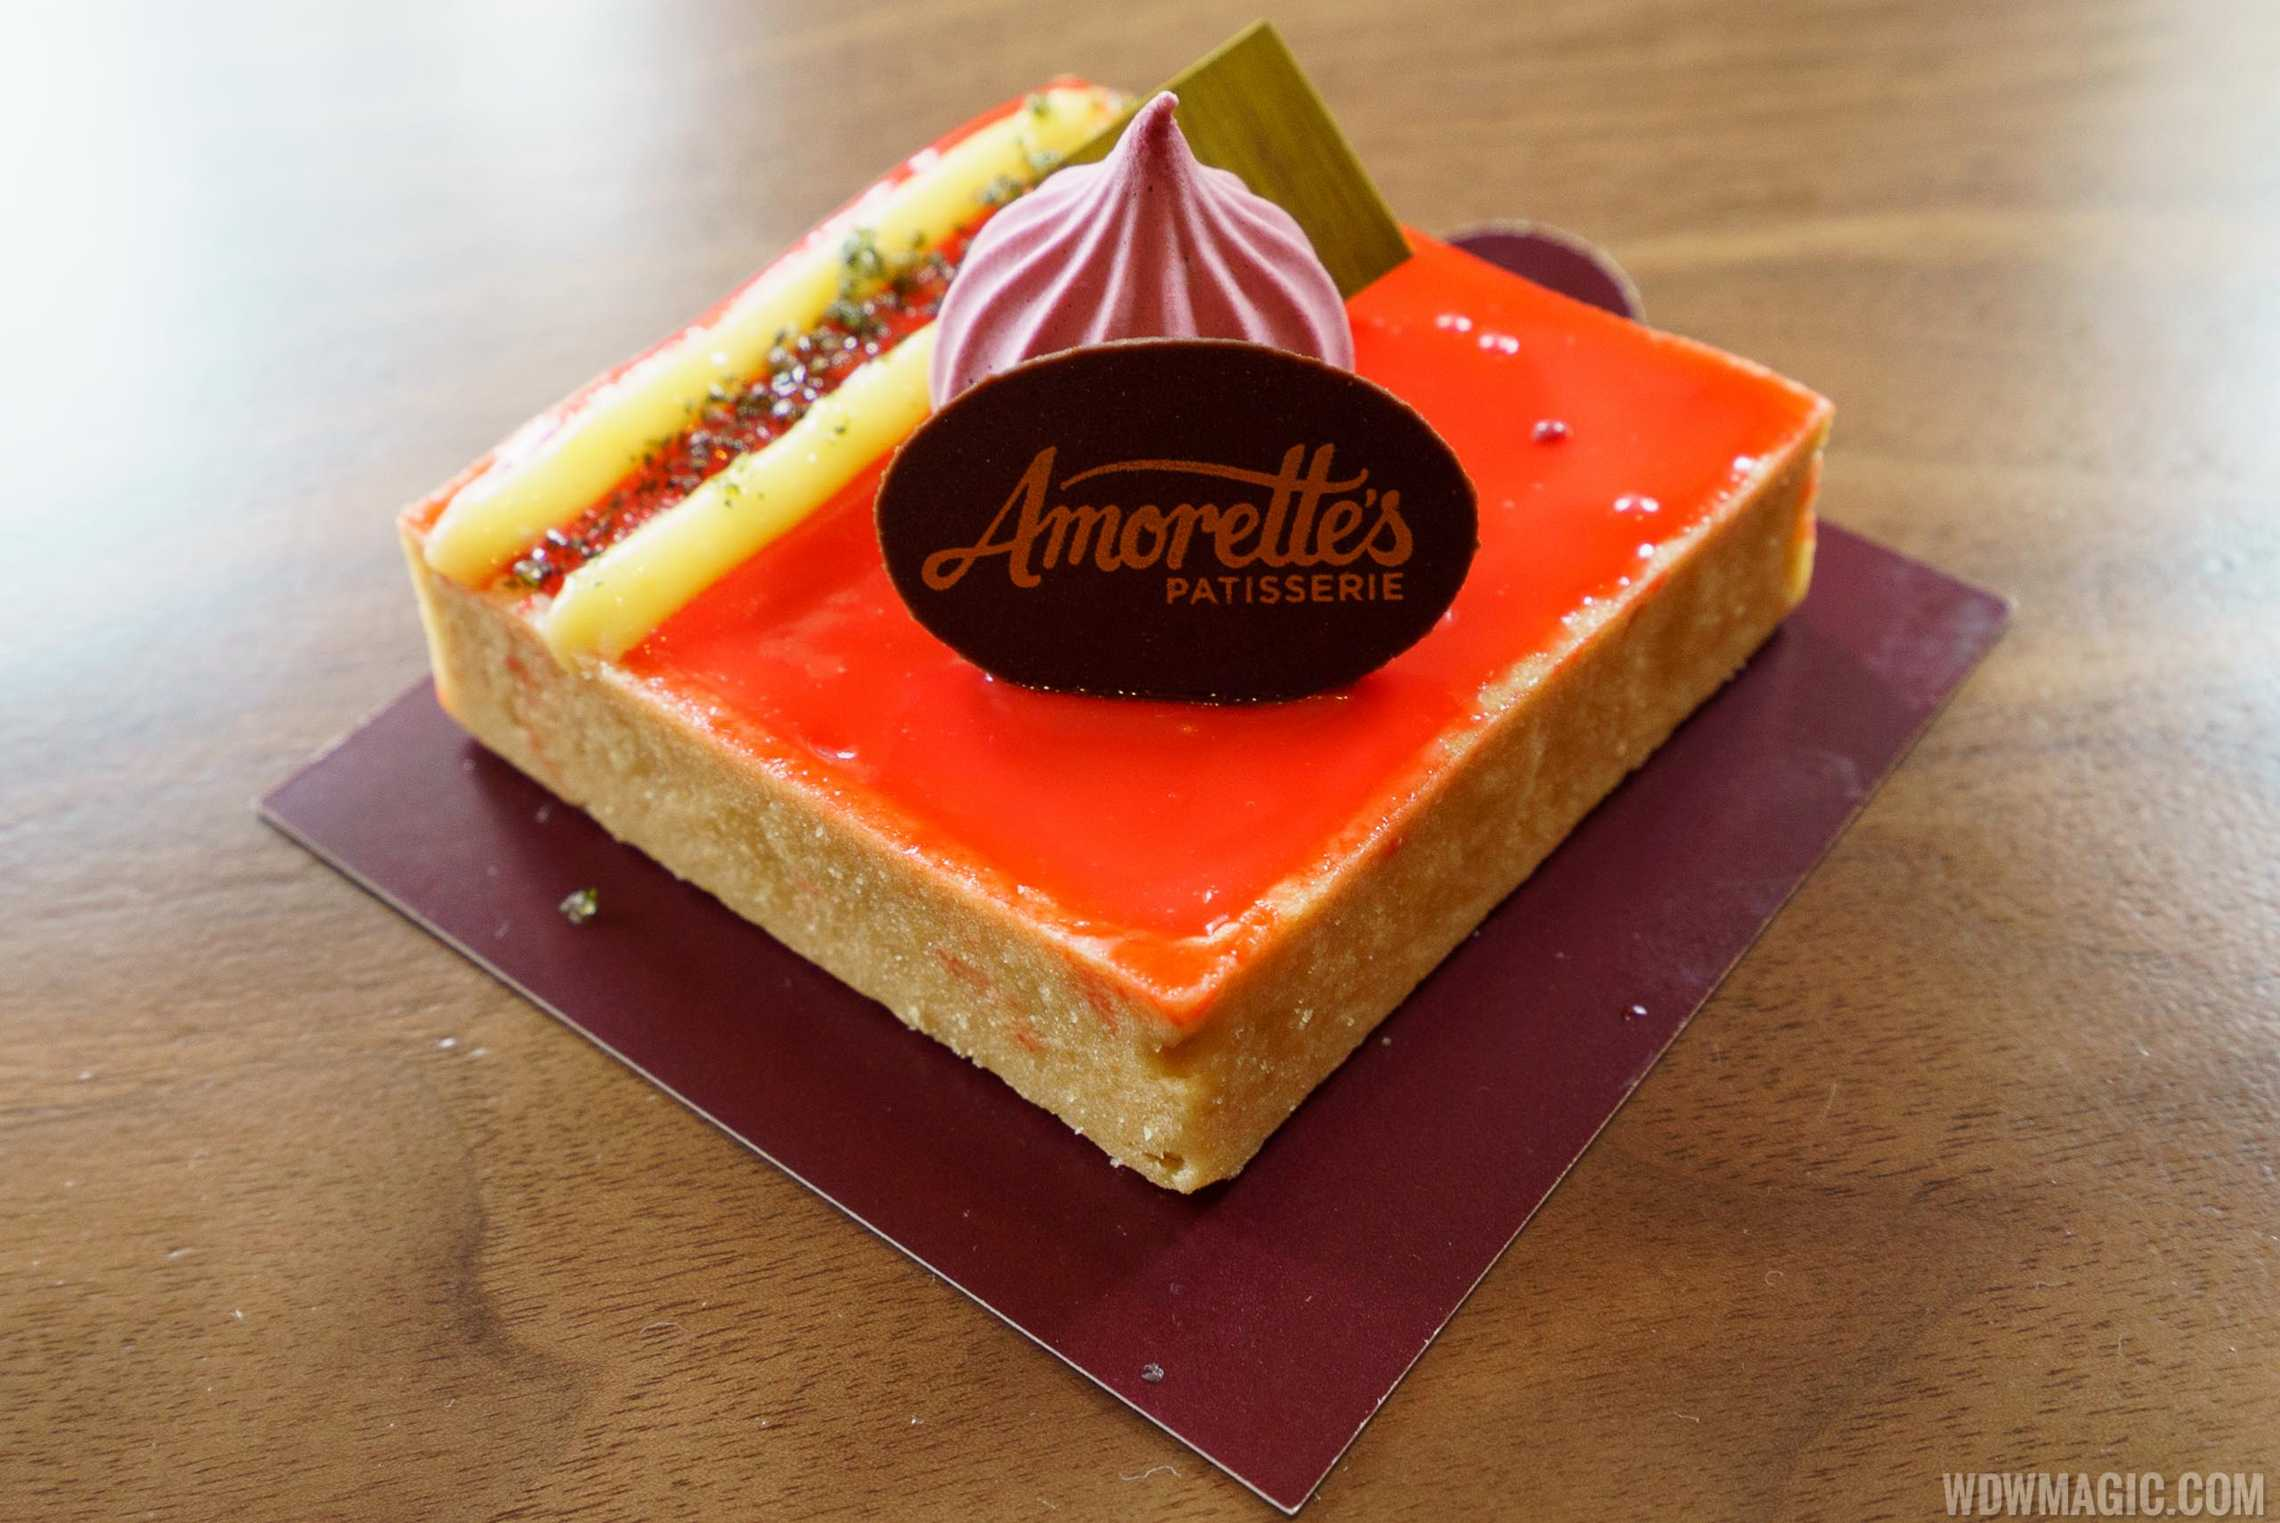 Amorette's Patisserie - Strawberry Fields of OC: Strawberry Mousse, Basil Sugar, and Lemon Curd